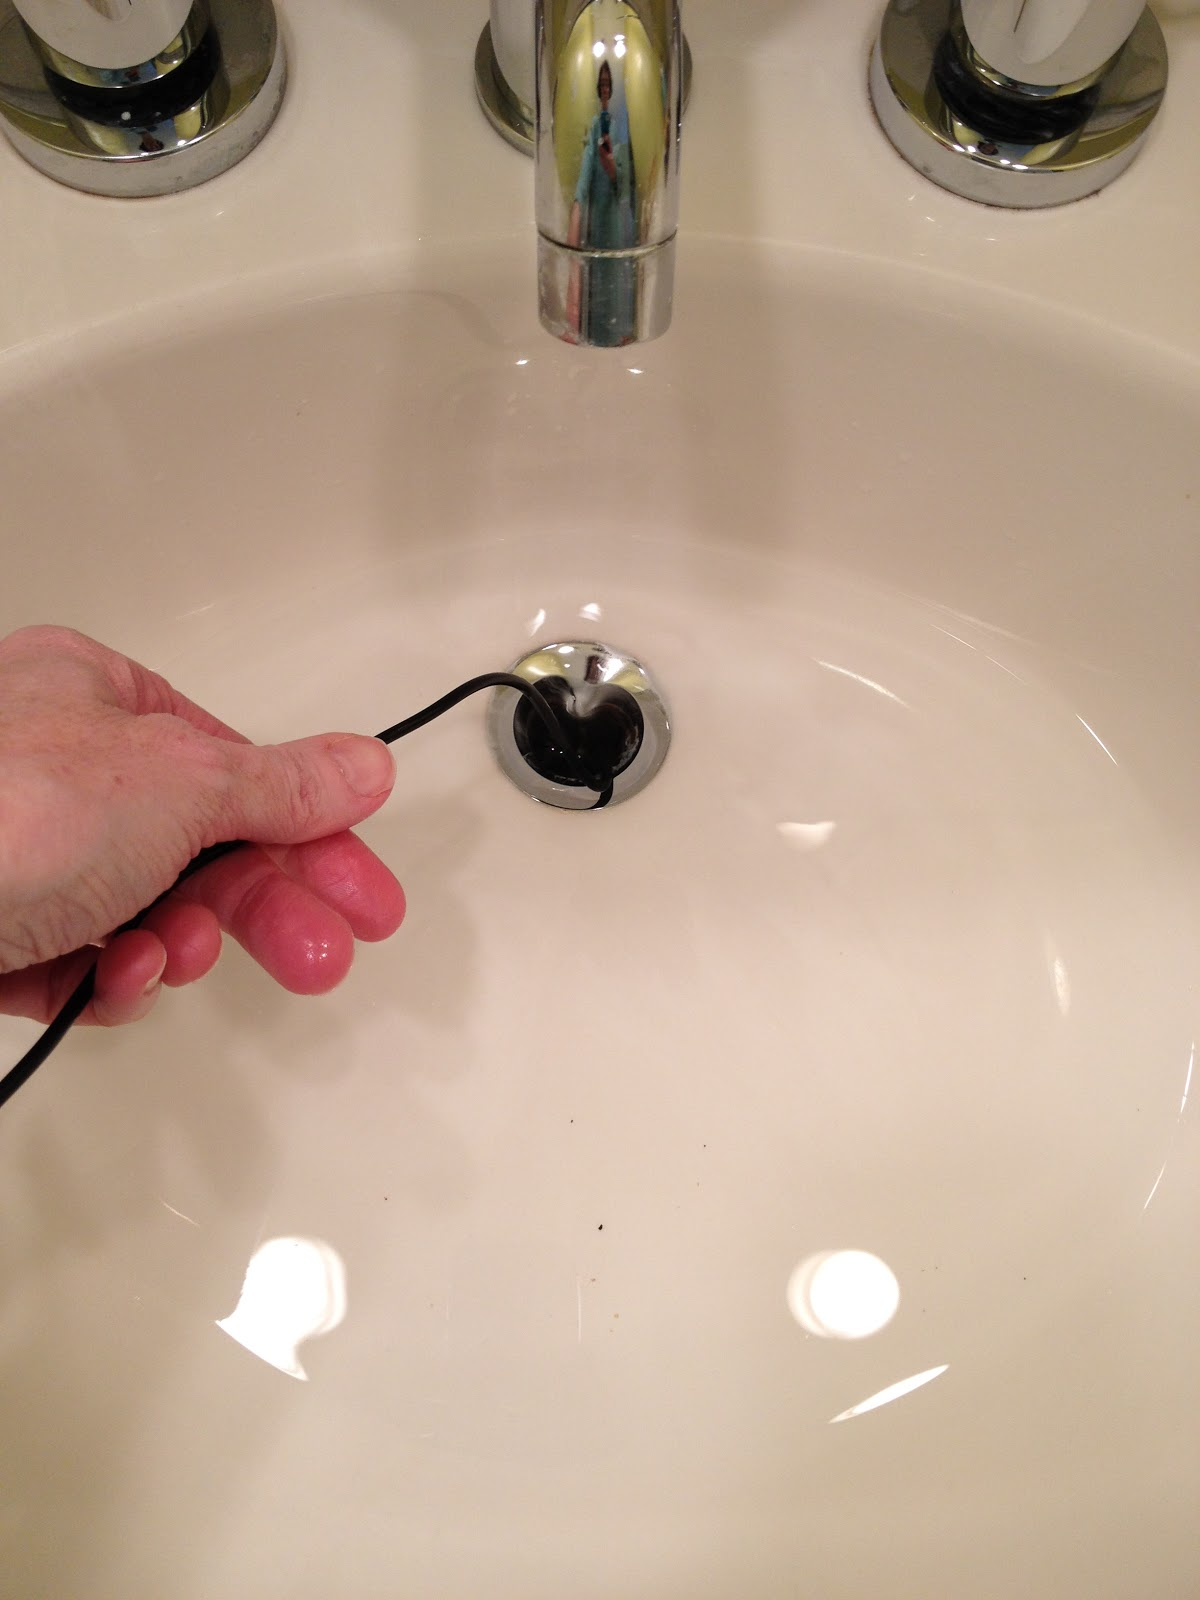 Clean your bath kitchen drains naturally family - How to clean bathroom sink drain ...